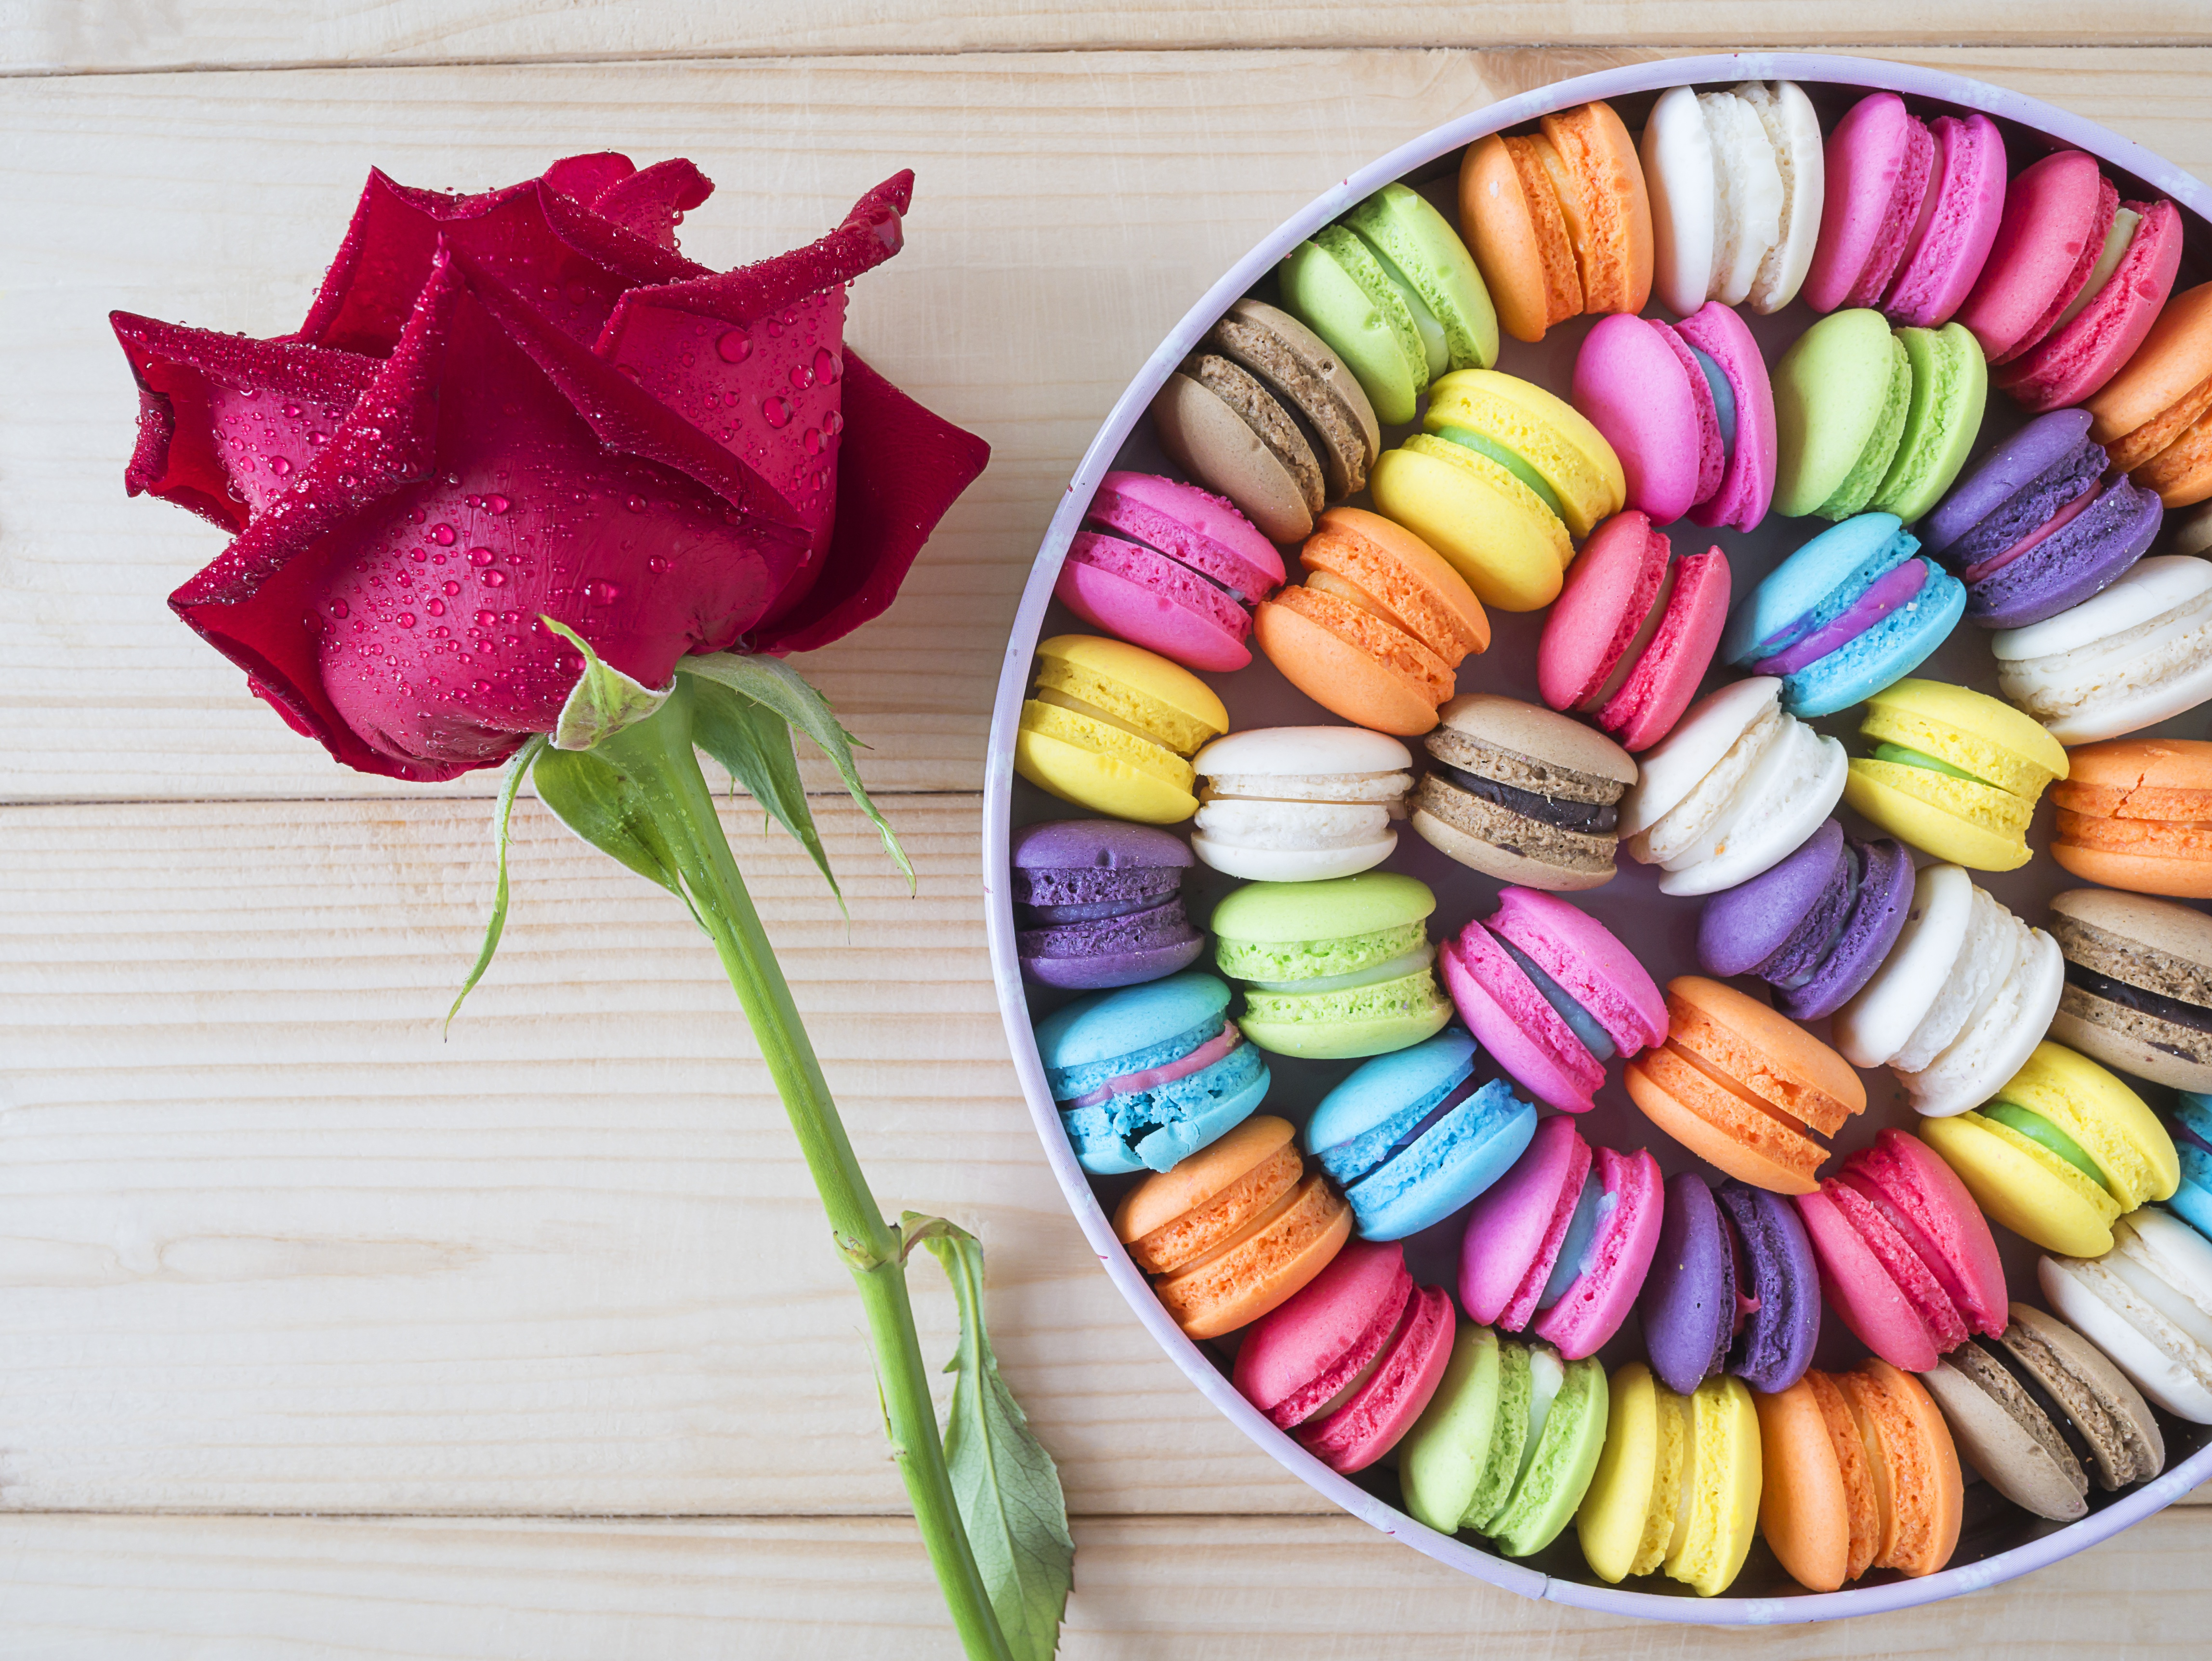 Colors Flower Macaron Rose Sweets 4592x3448